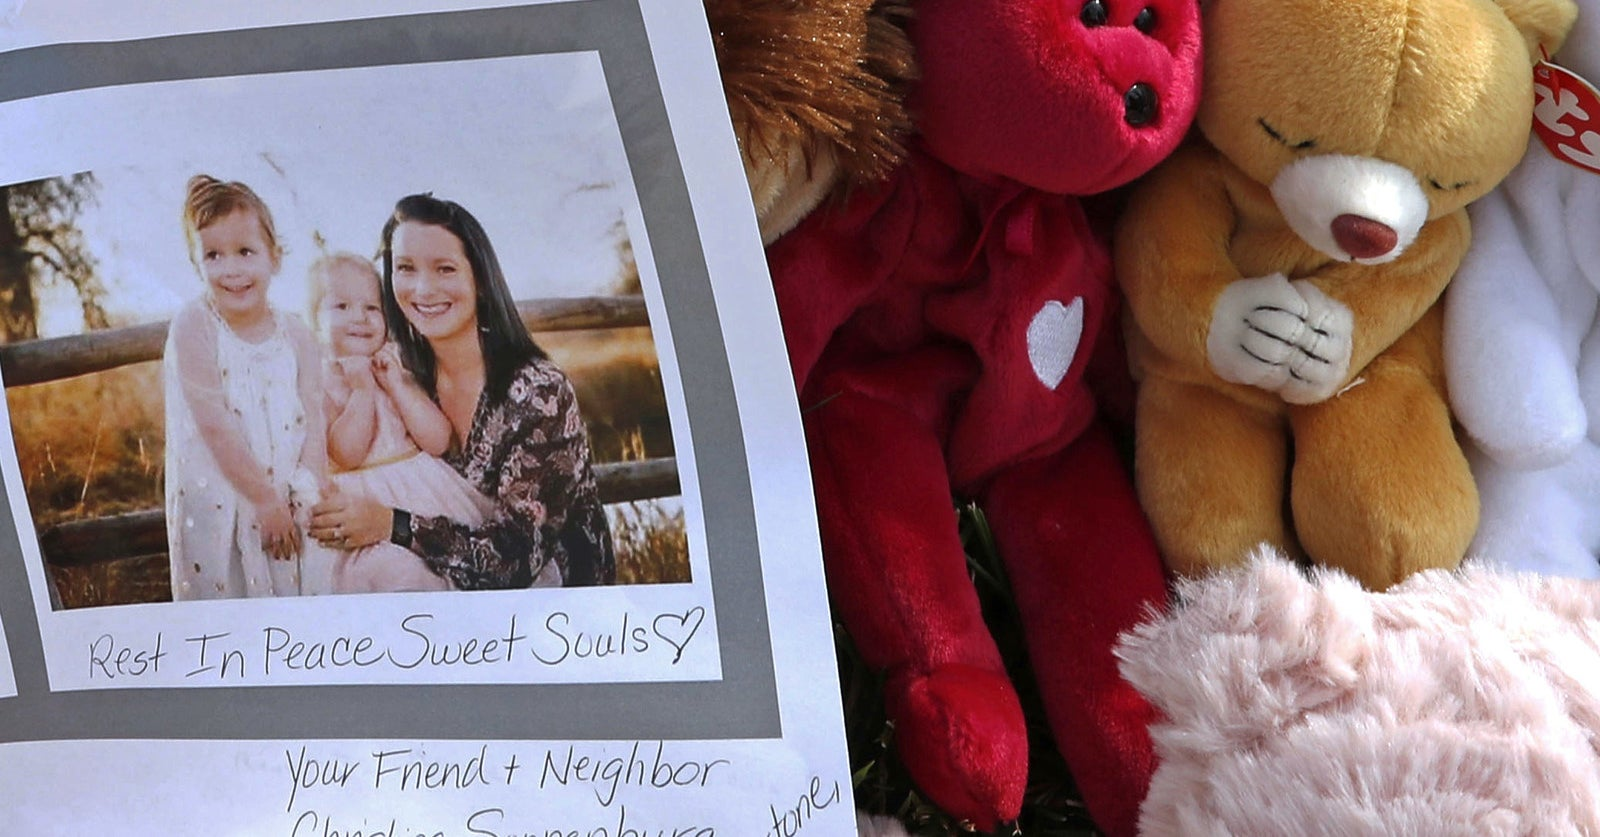 www.buzzfeed.com: Chris Watts Reveals How He Killed His Wife And Two Young Daughters